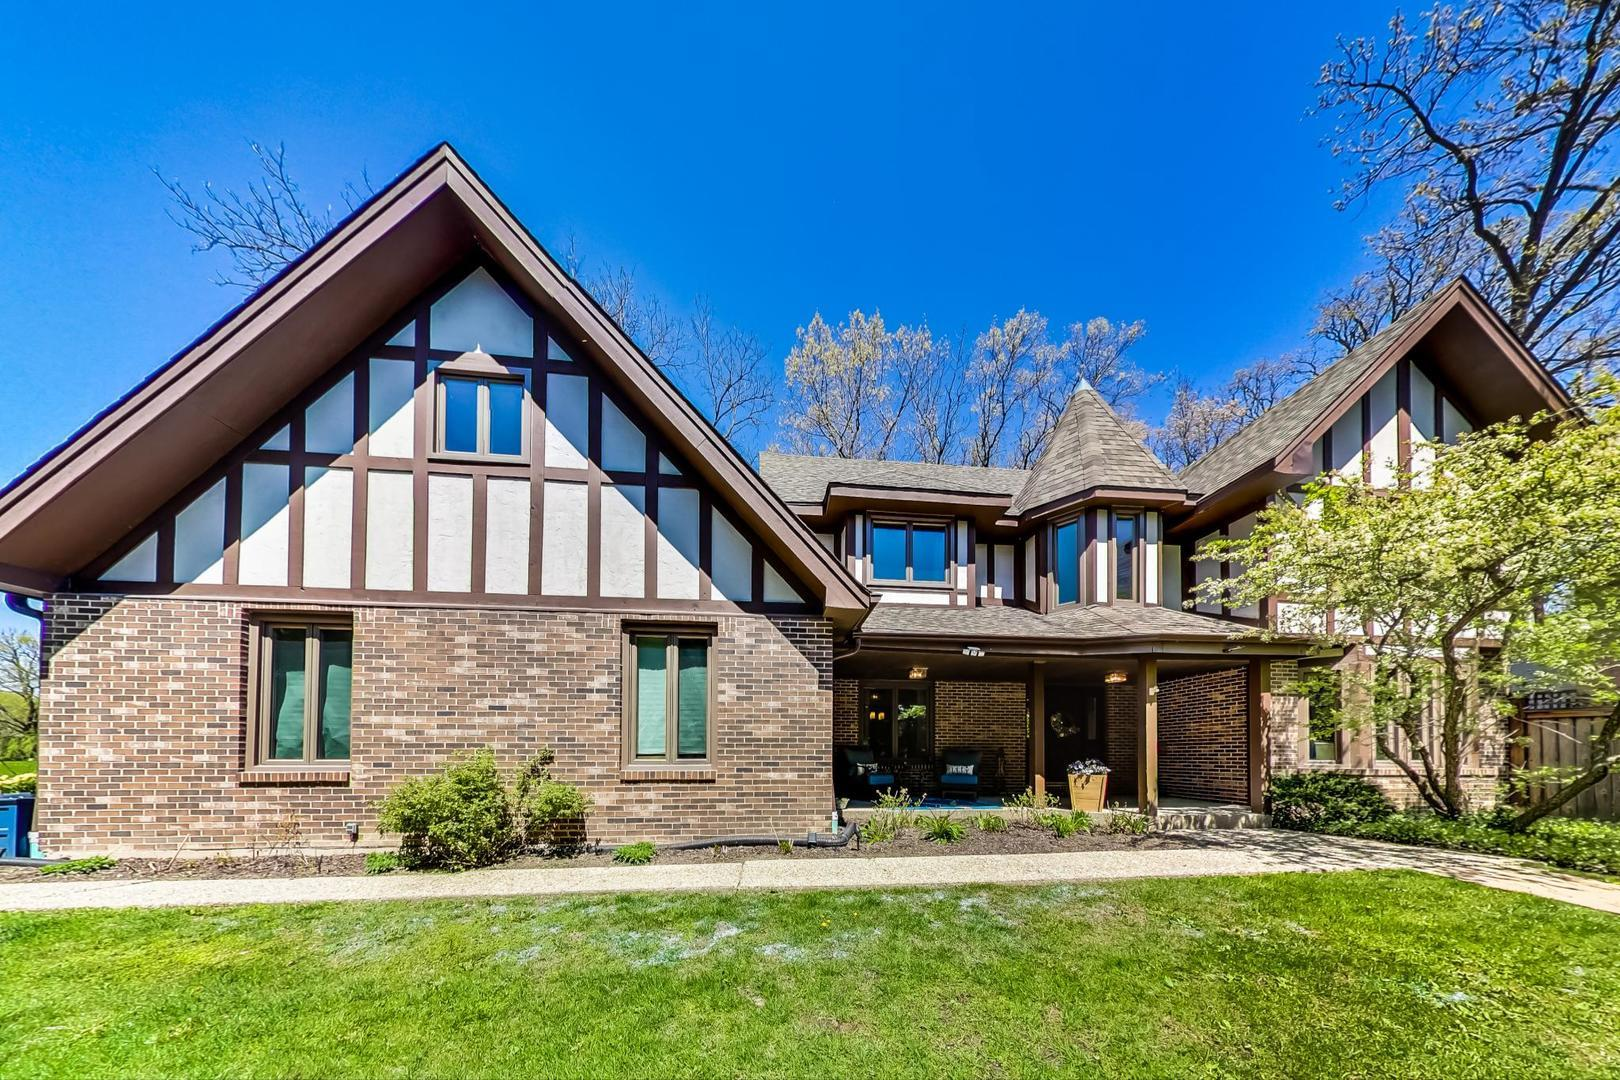 1191 Prairie Avenue, Lake Forest, IL 60045 - #: 11032471